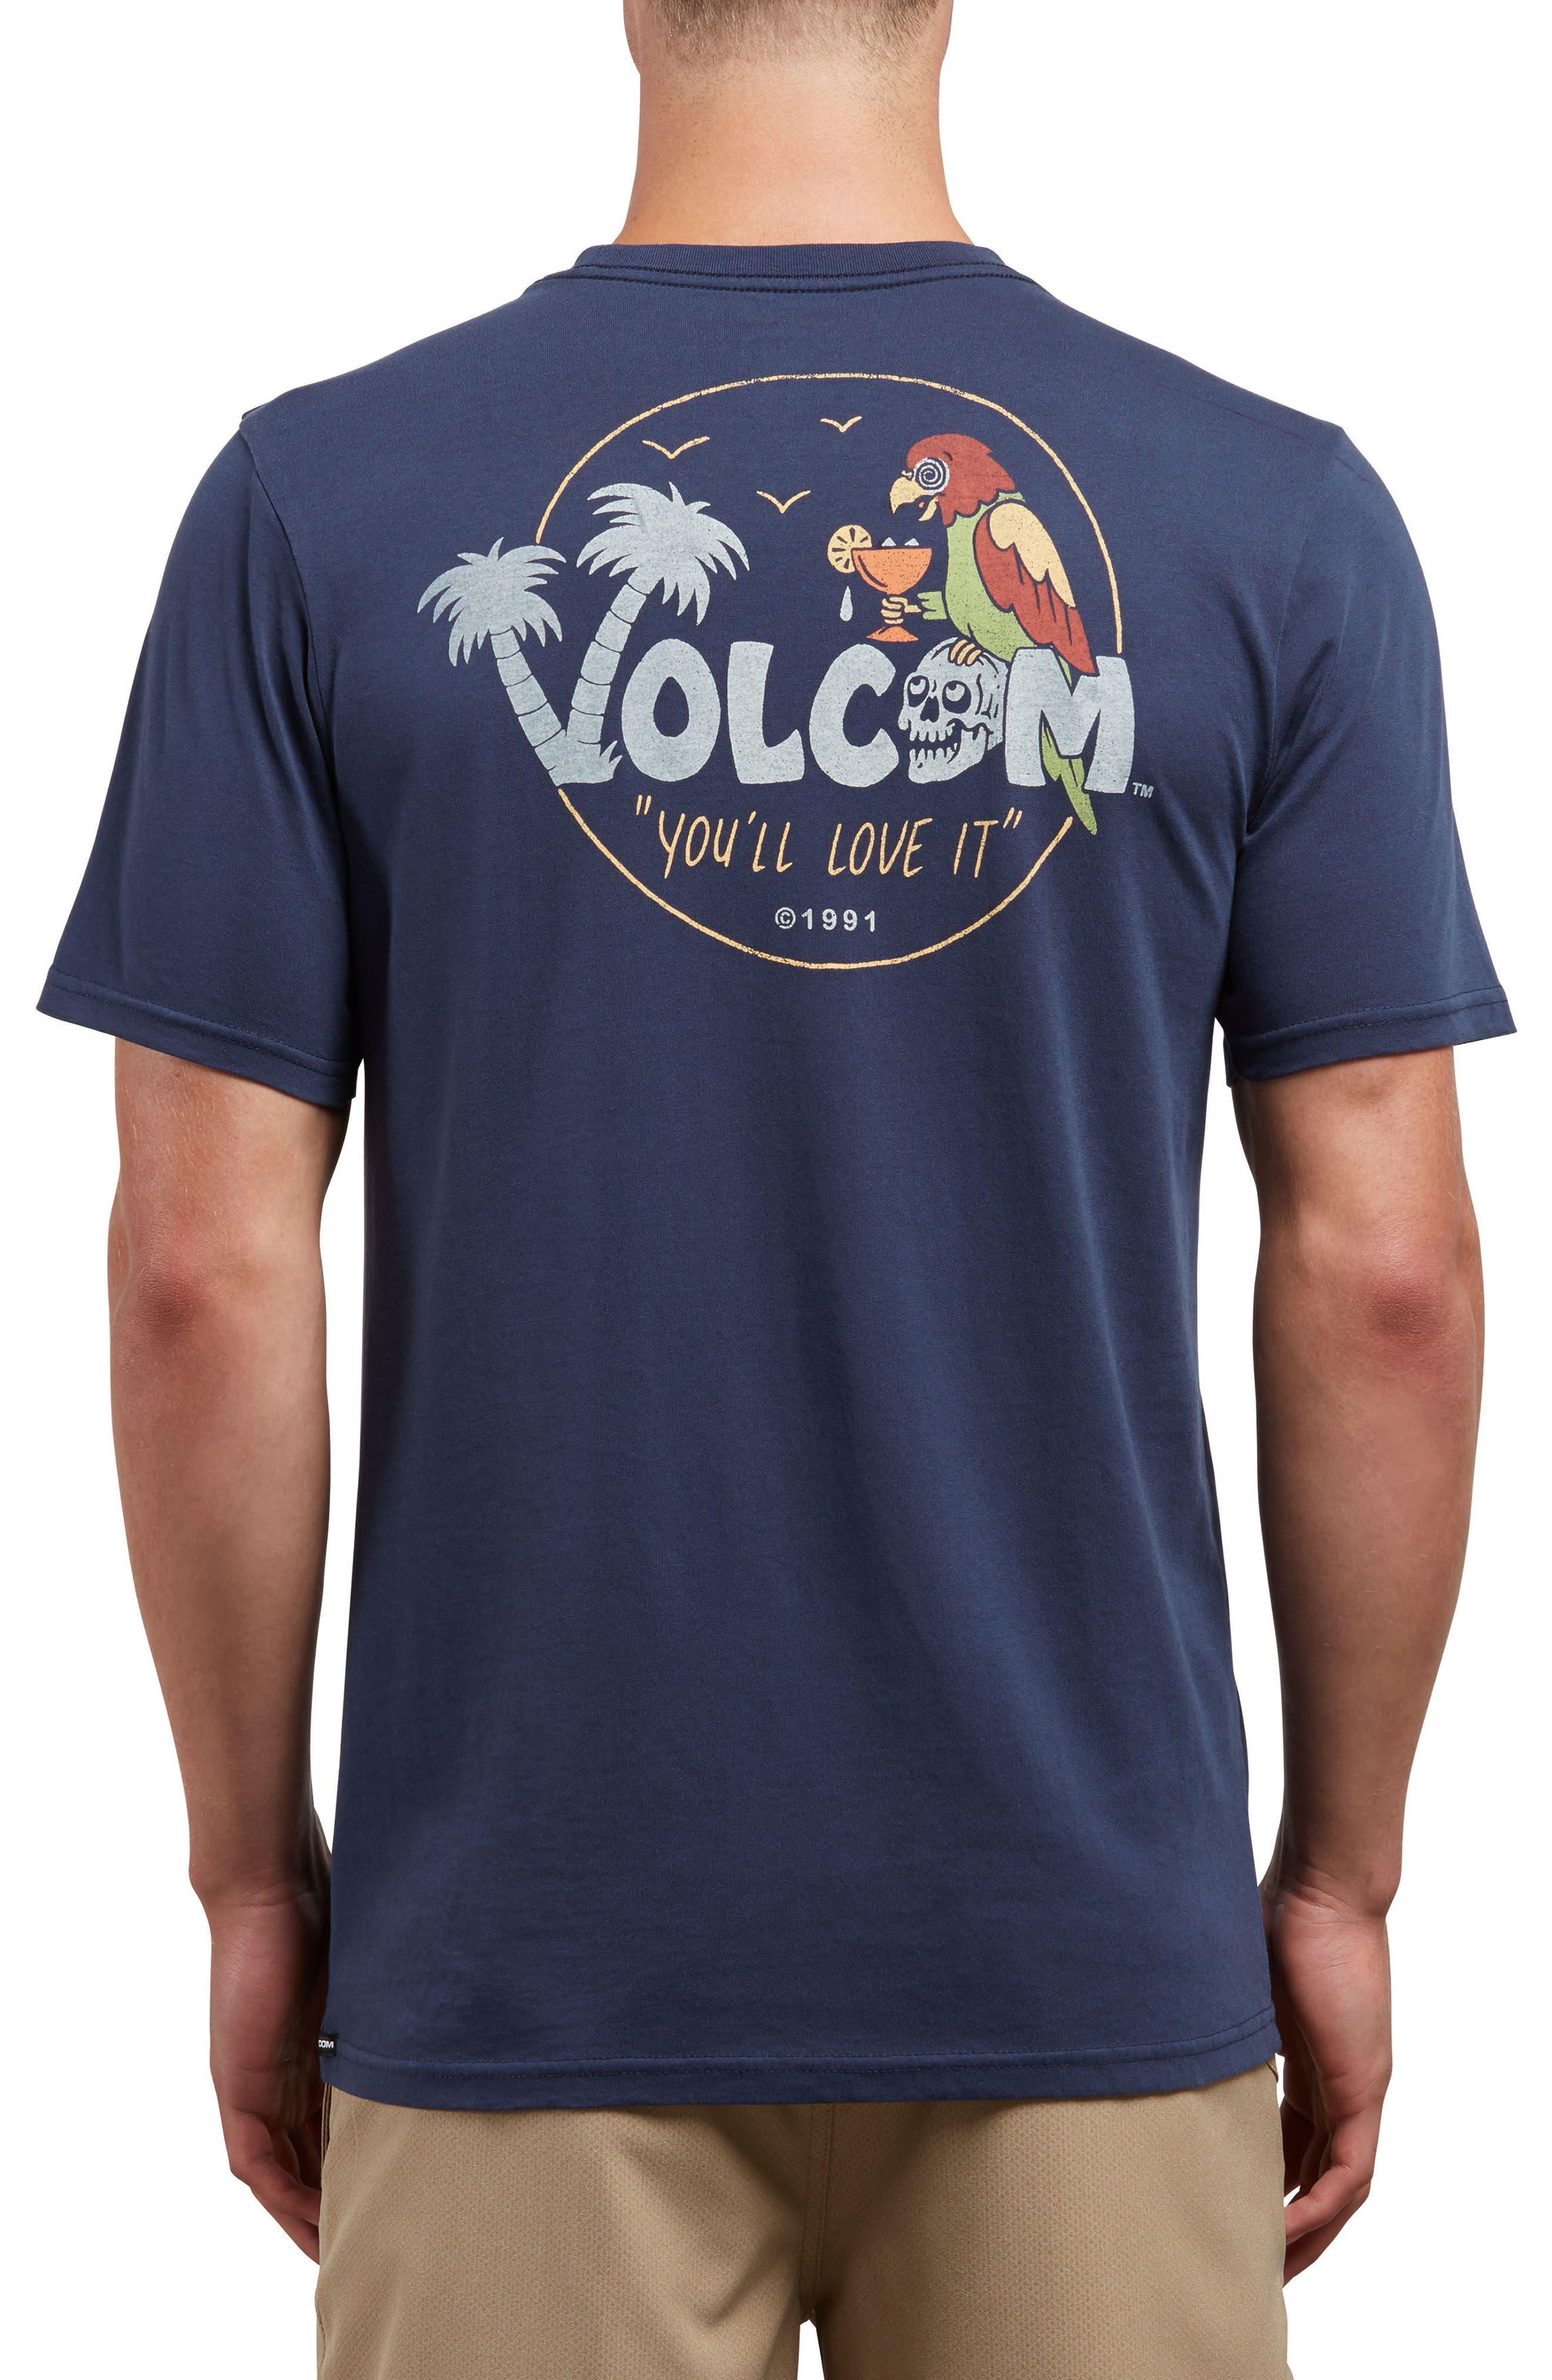 El Loro Loco T-Shirt,                             Alternate thumbnail 2, color,                             Navy